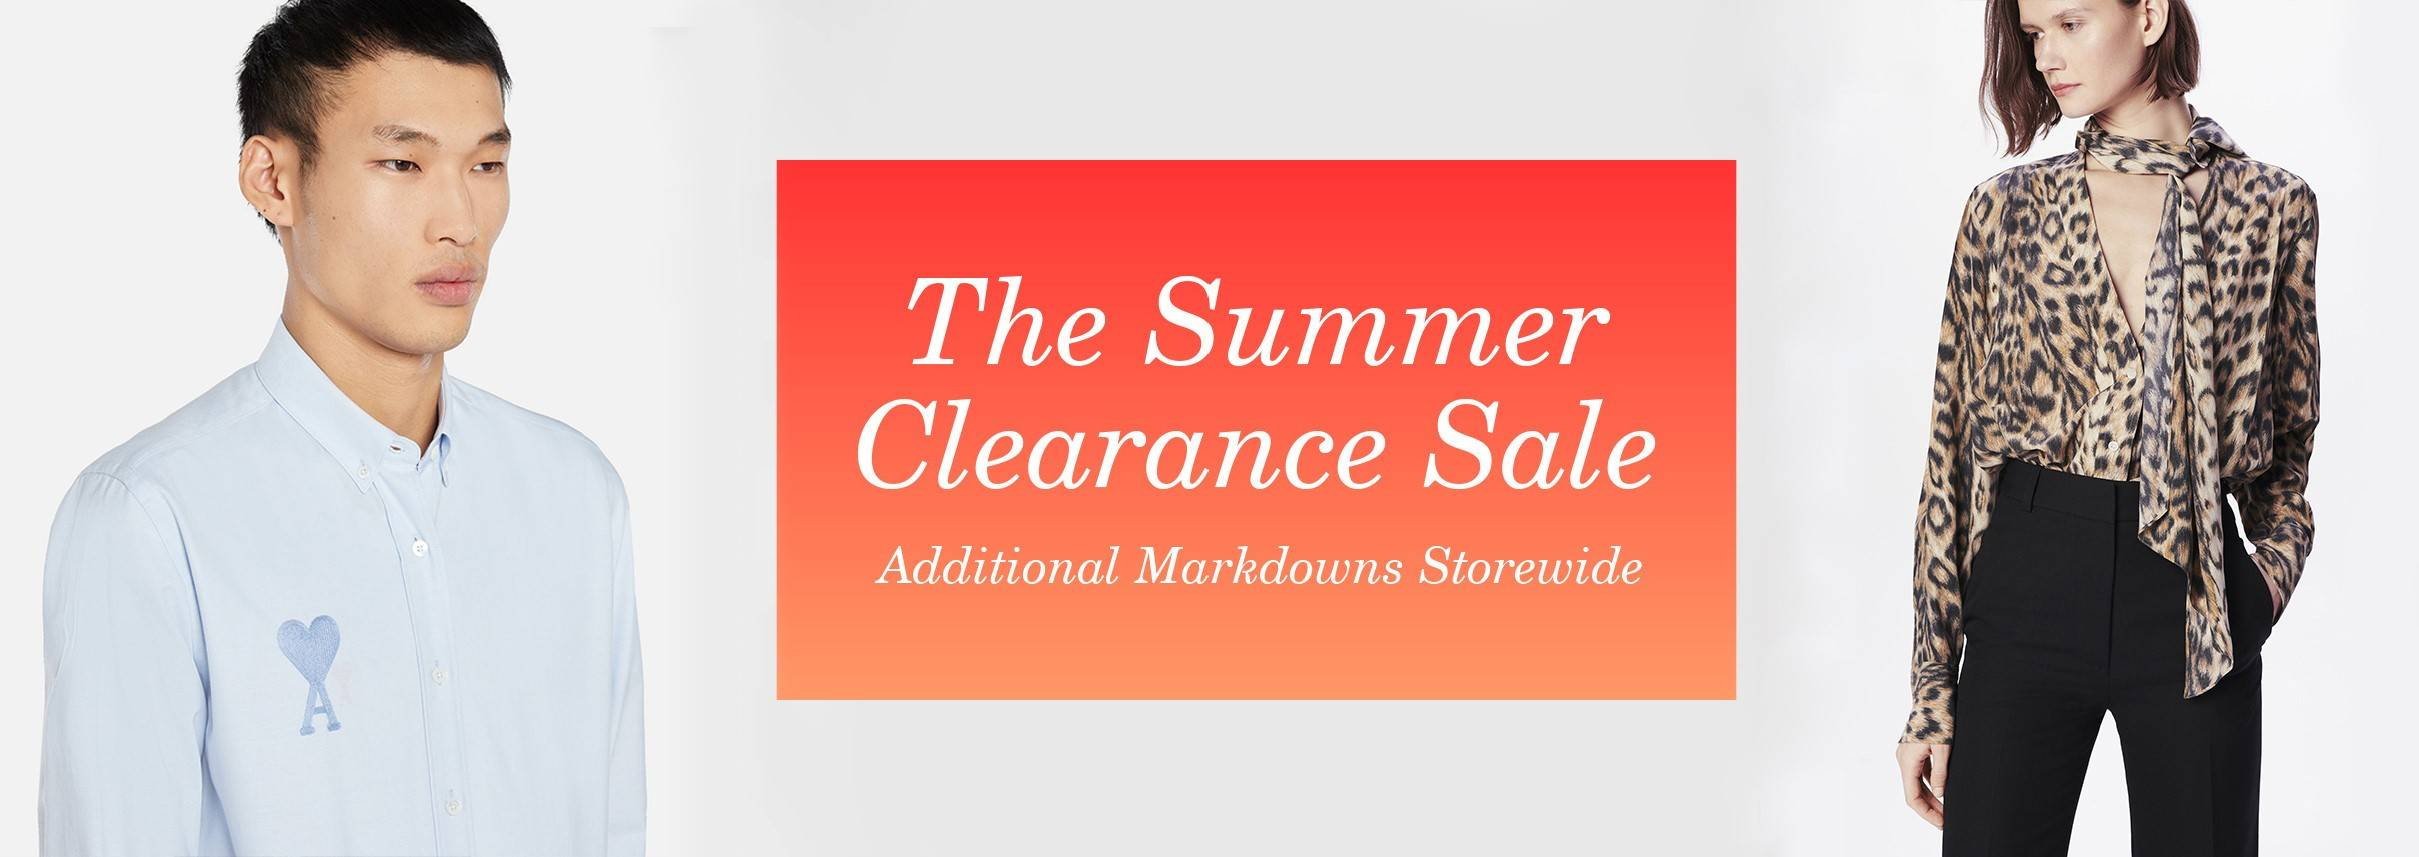 The Summer Clearance Sale